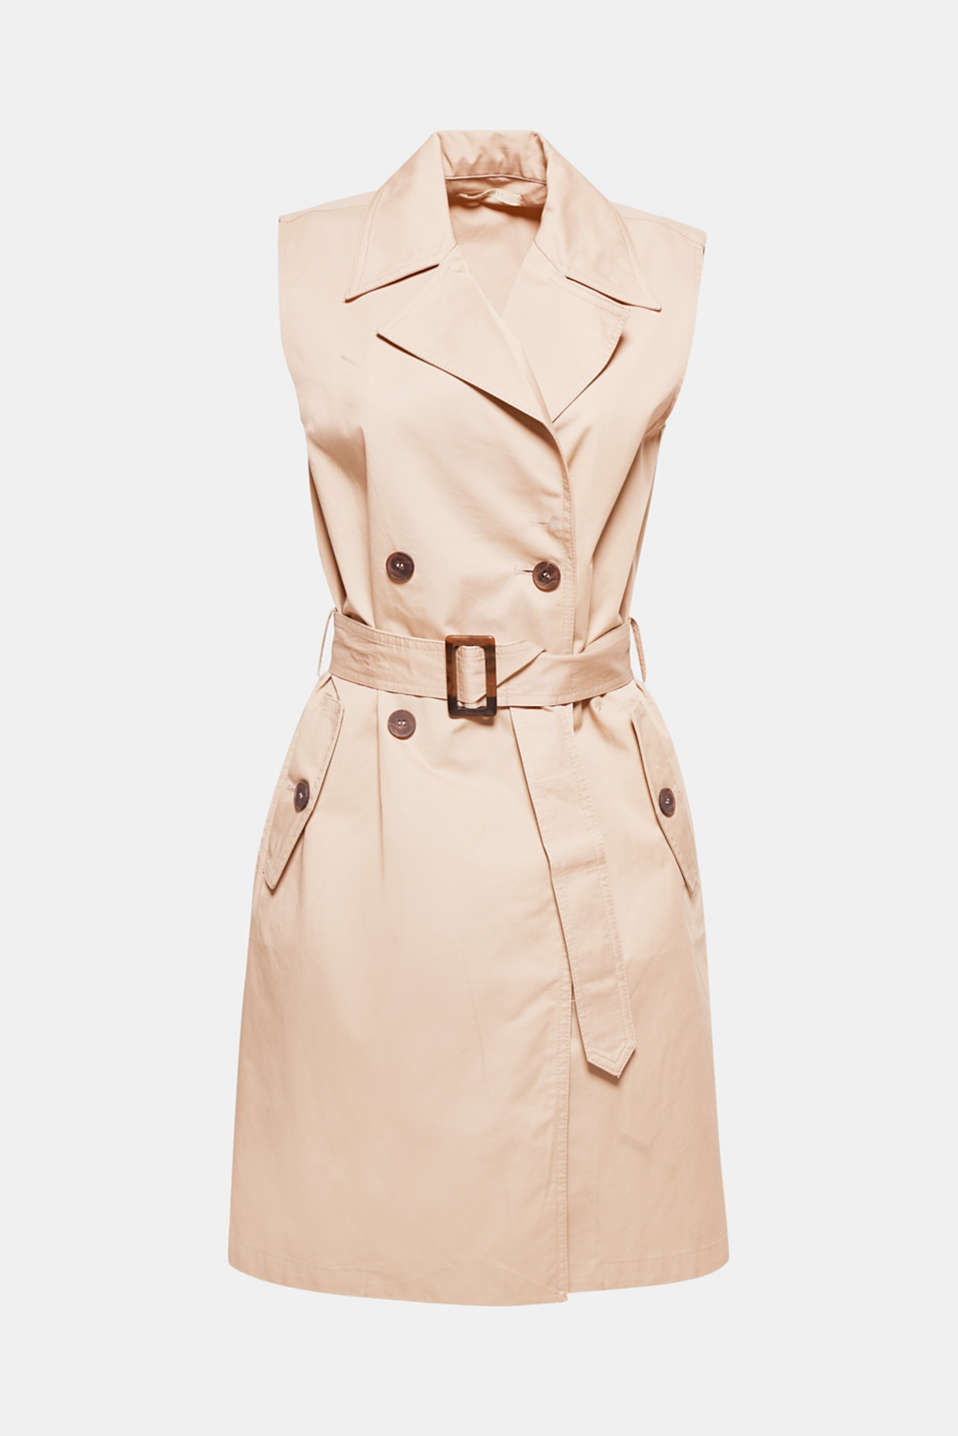 Looks just as good with a blouse as it does with jeans and a T-shirt: long, sleeveless waistcoat with details in an elegant trench coat style.